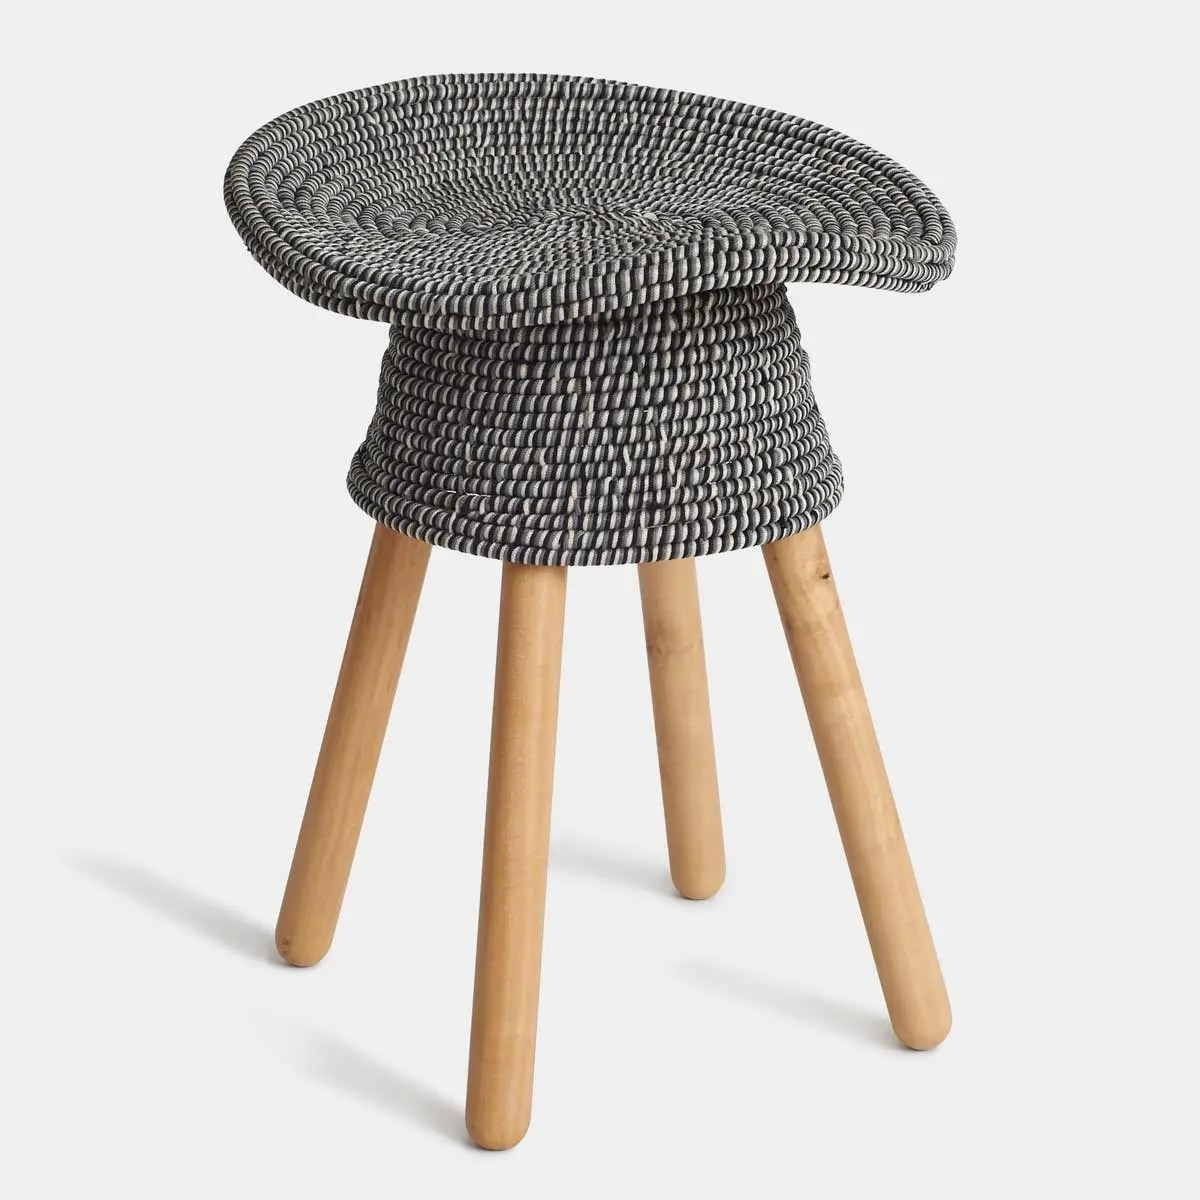 Rattan Lounge Chair Philippines Coiled Stool